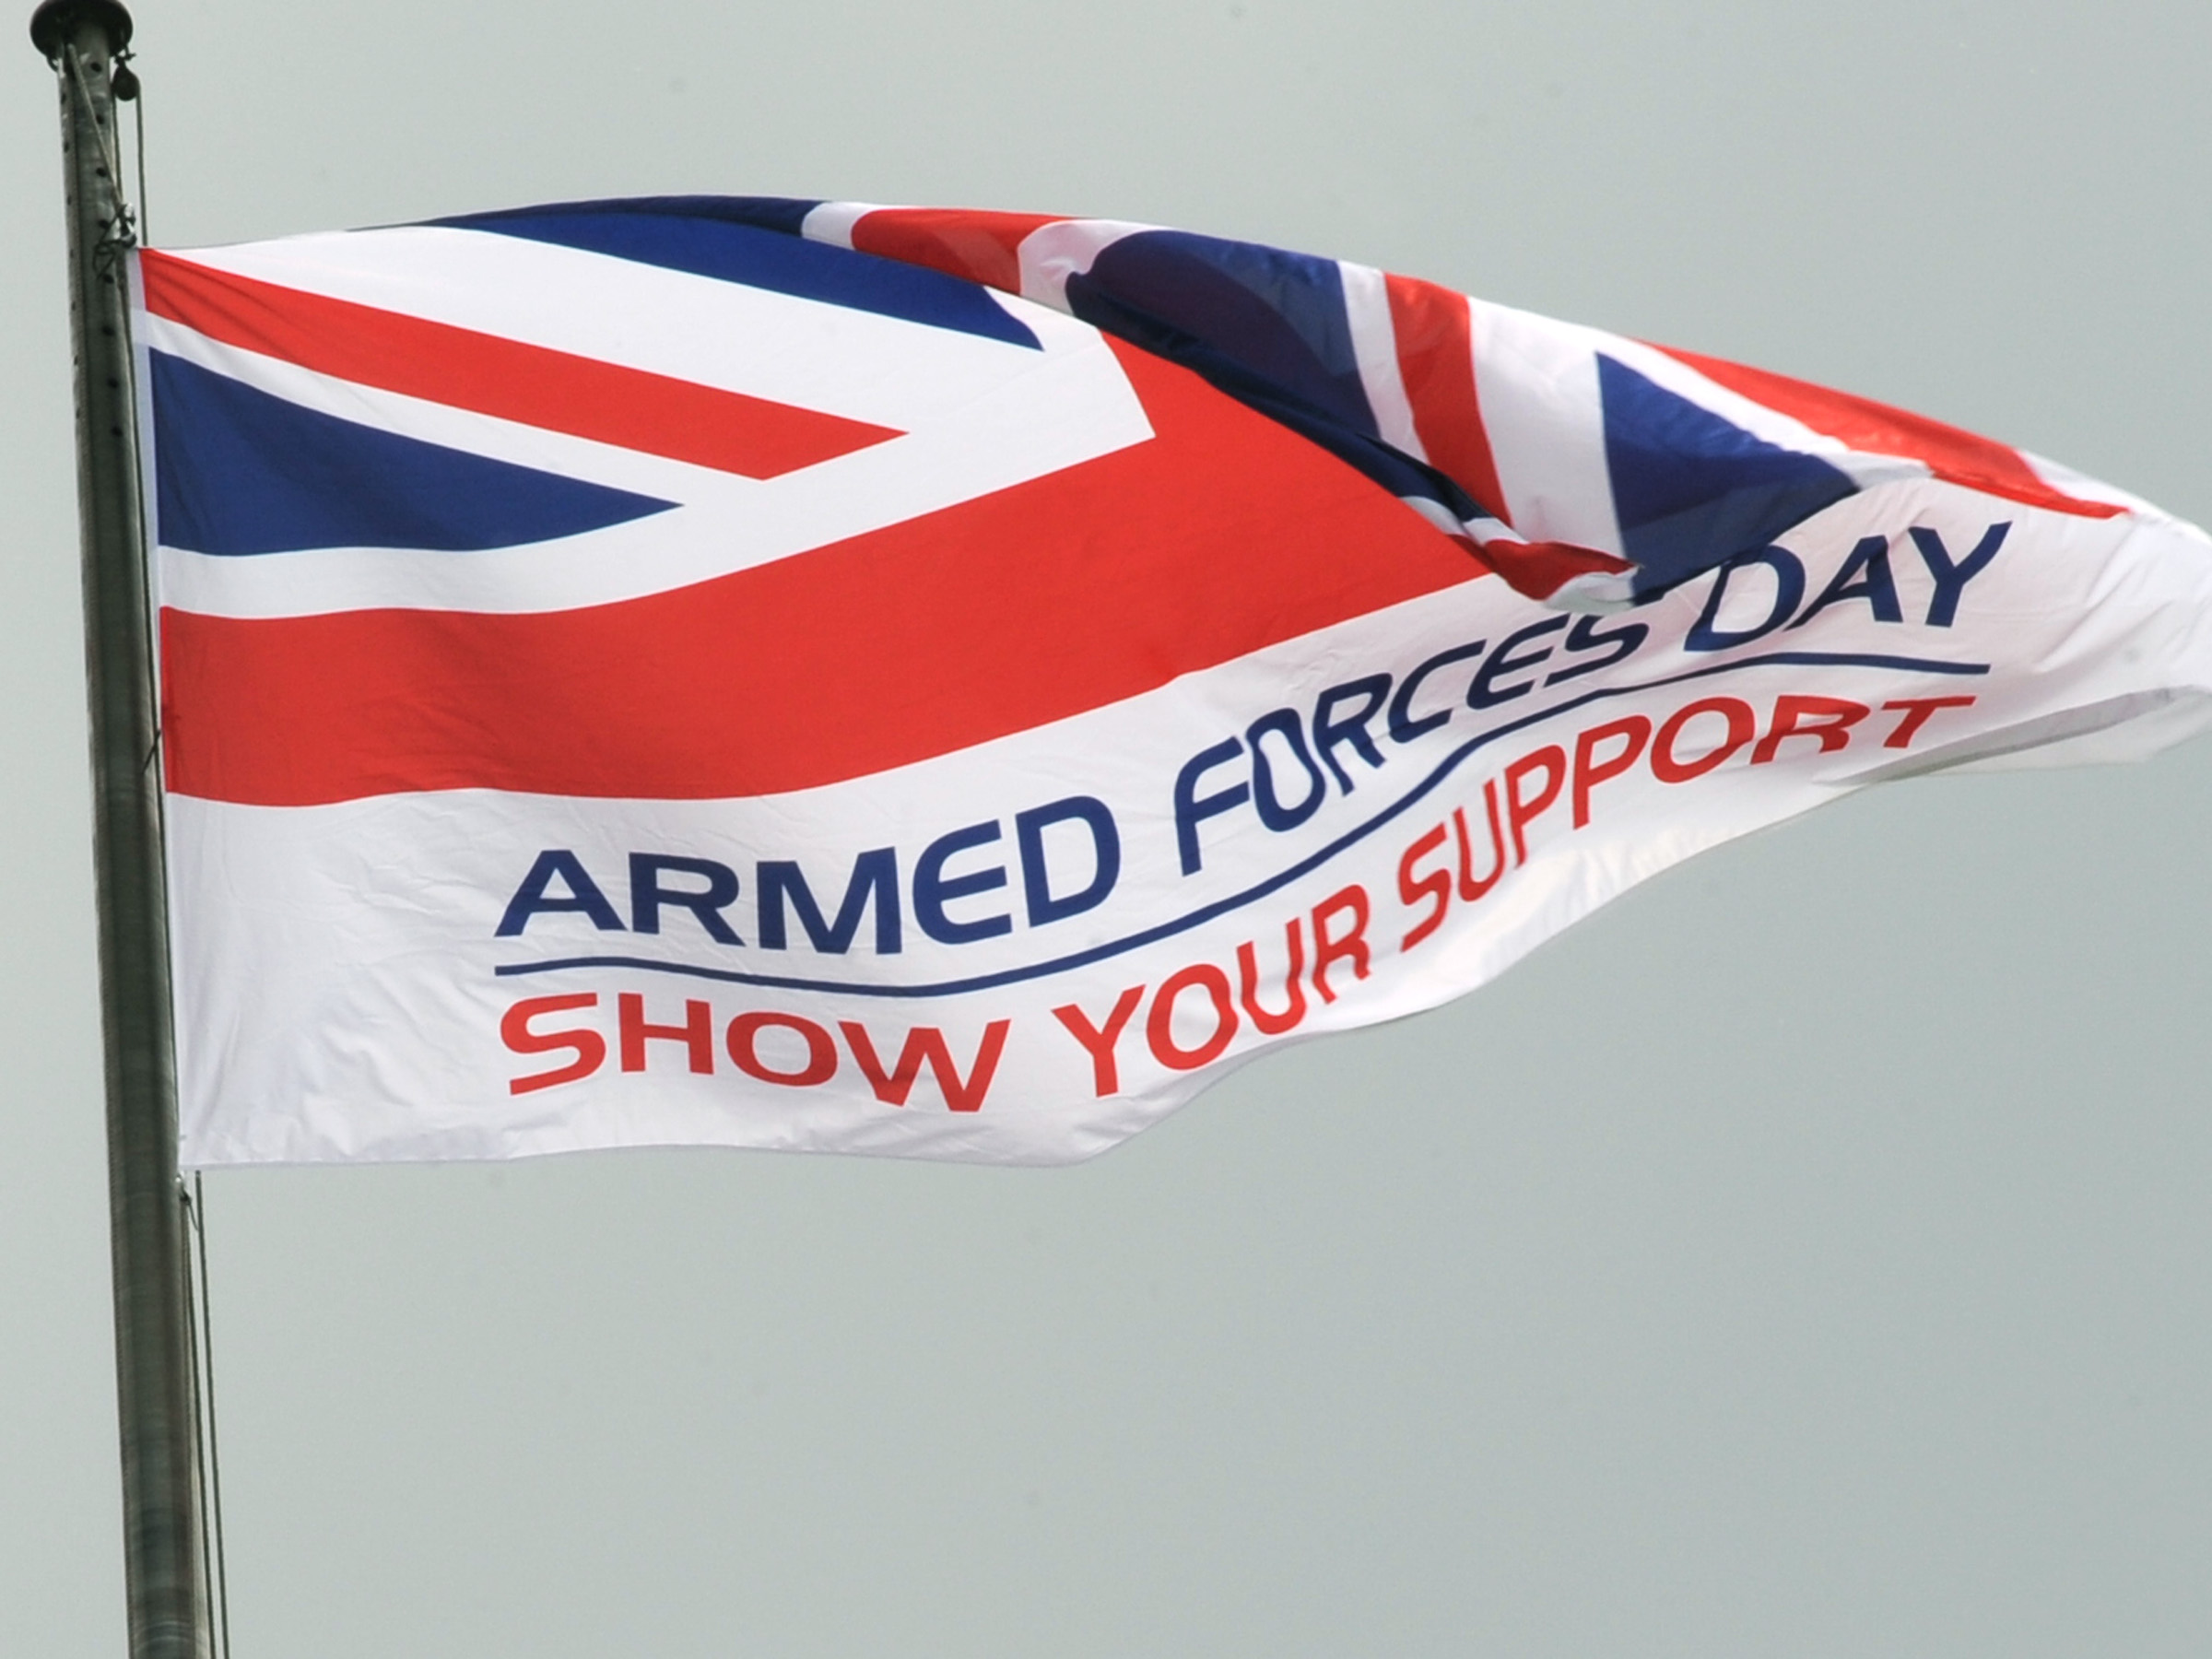 Armed forces day 2016 clipart banner free library Official Imagery – Armed Forces Day banner free library